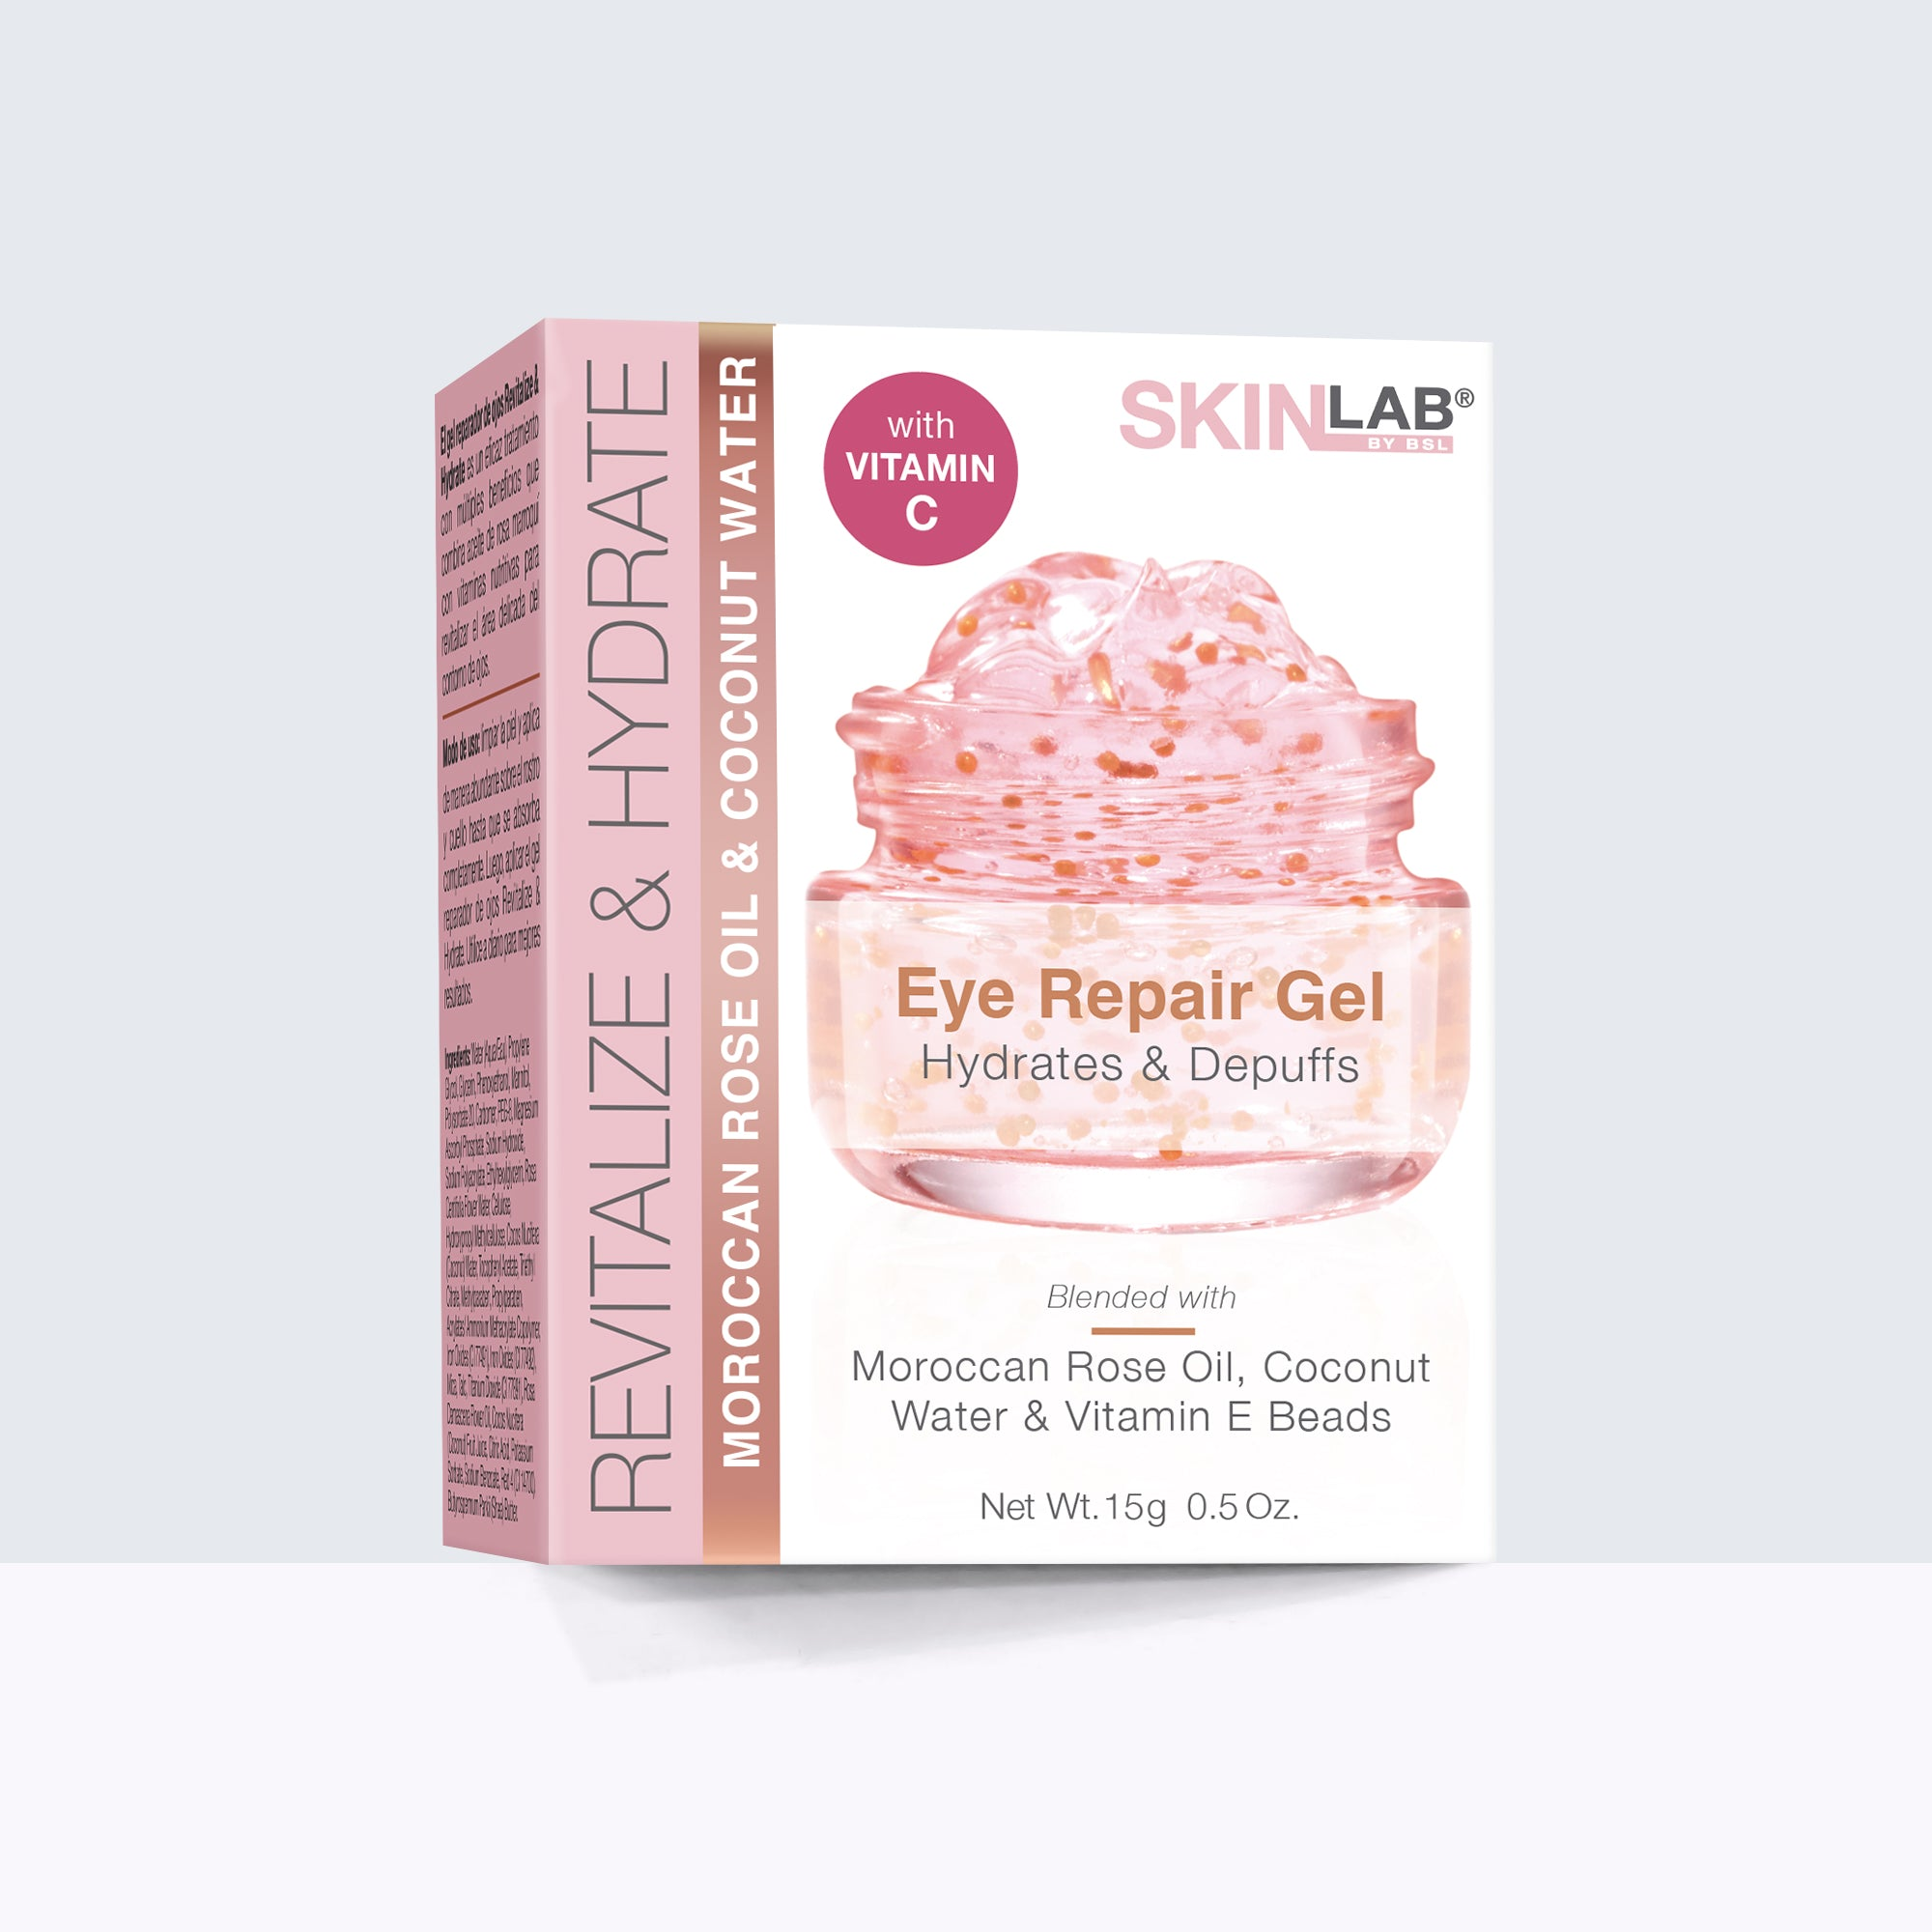 Revitalize & Hydrate Eye Repair Gel